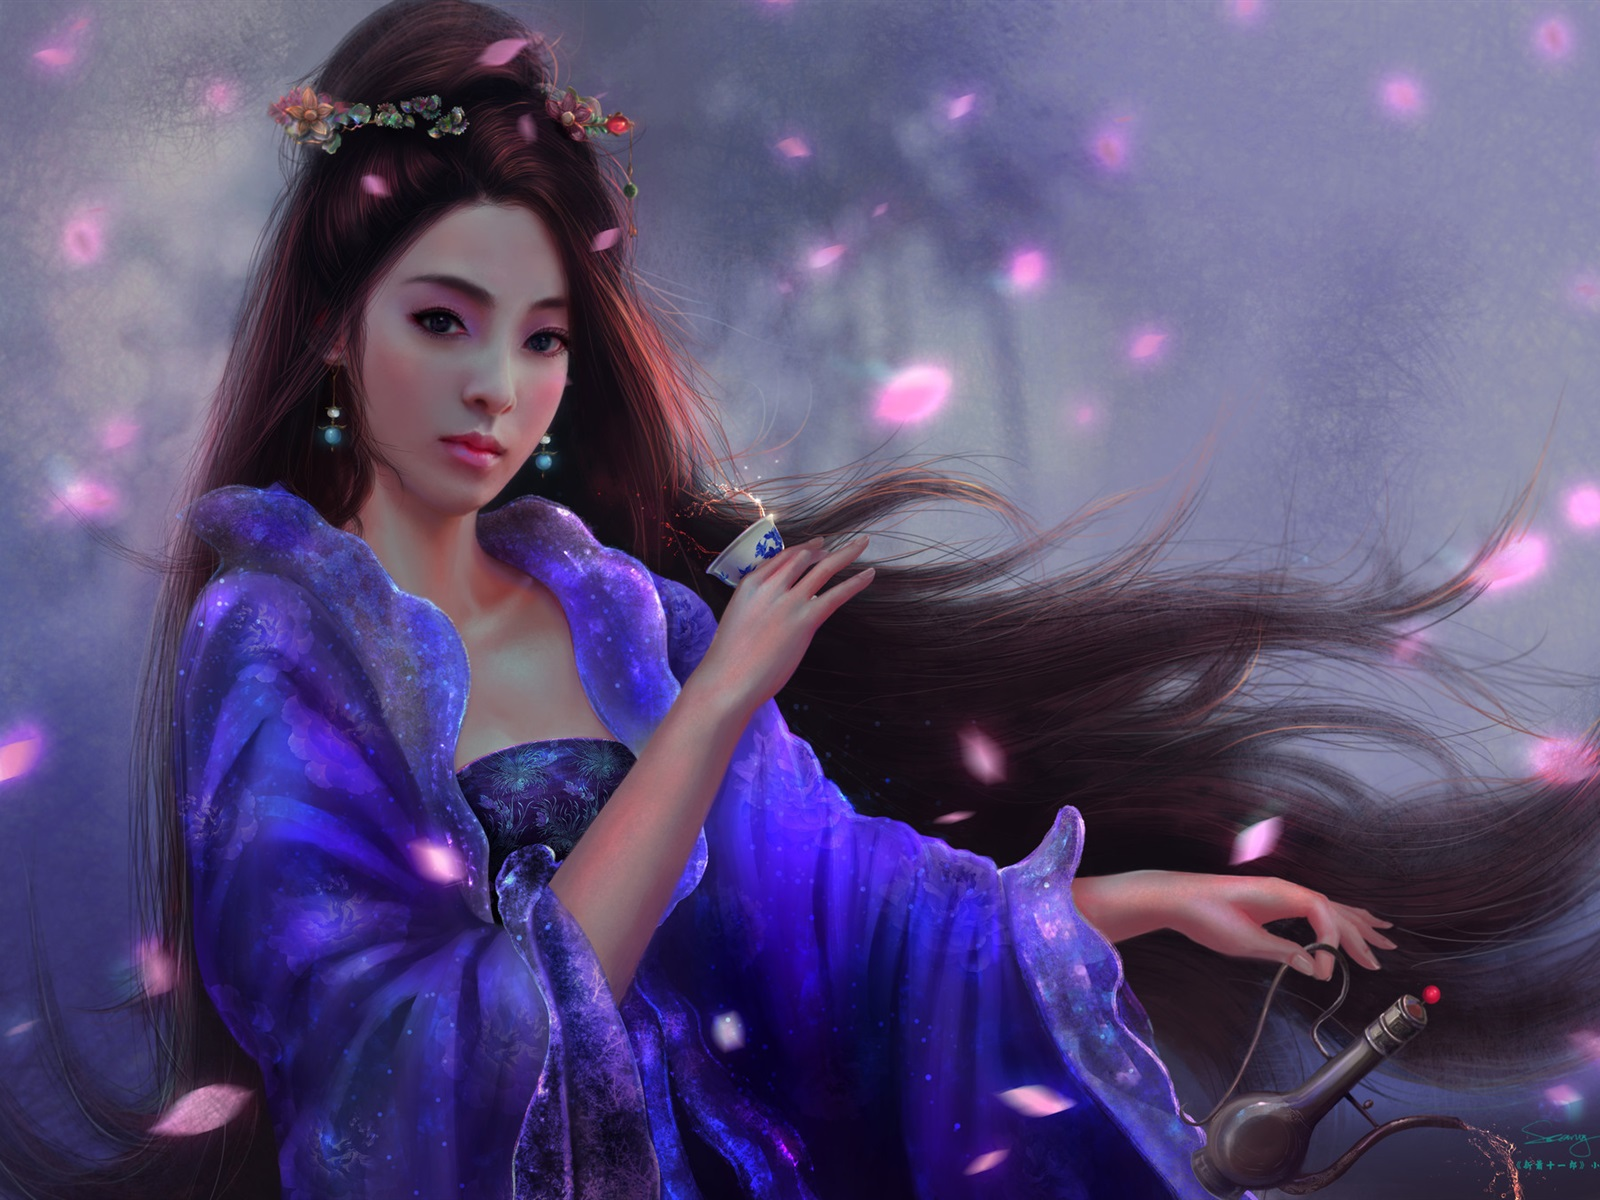 Wallpaper Beautiful Chinese Girl Retro Long Hair Art Picture 1920x1200 Hd Picture Image